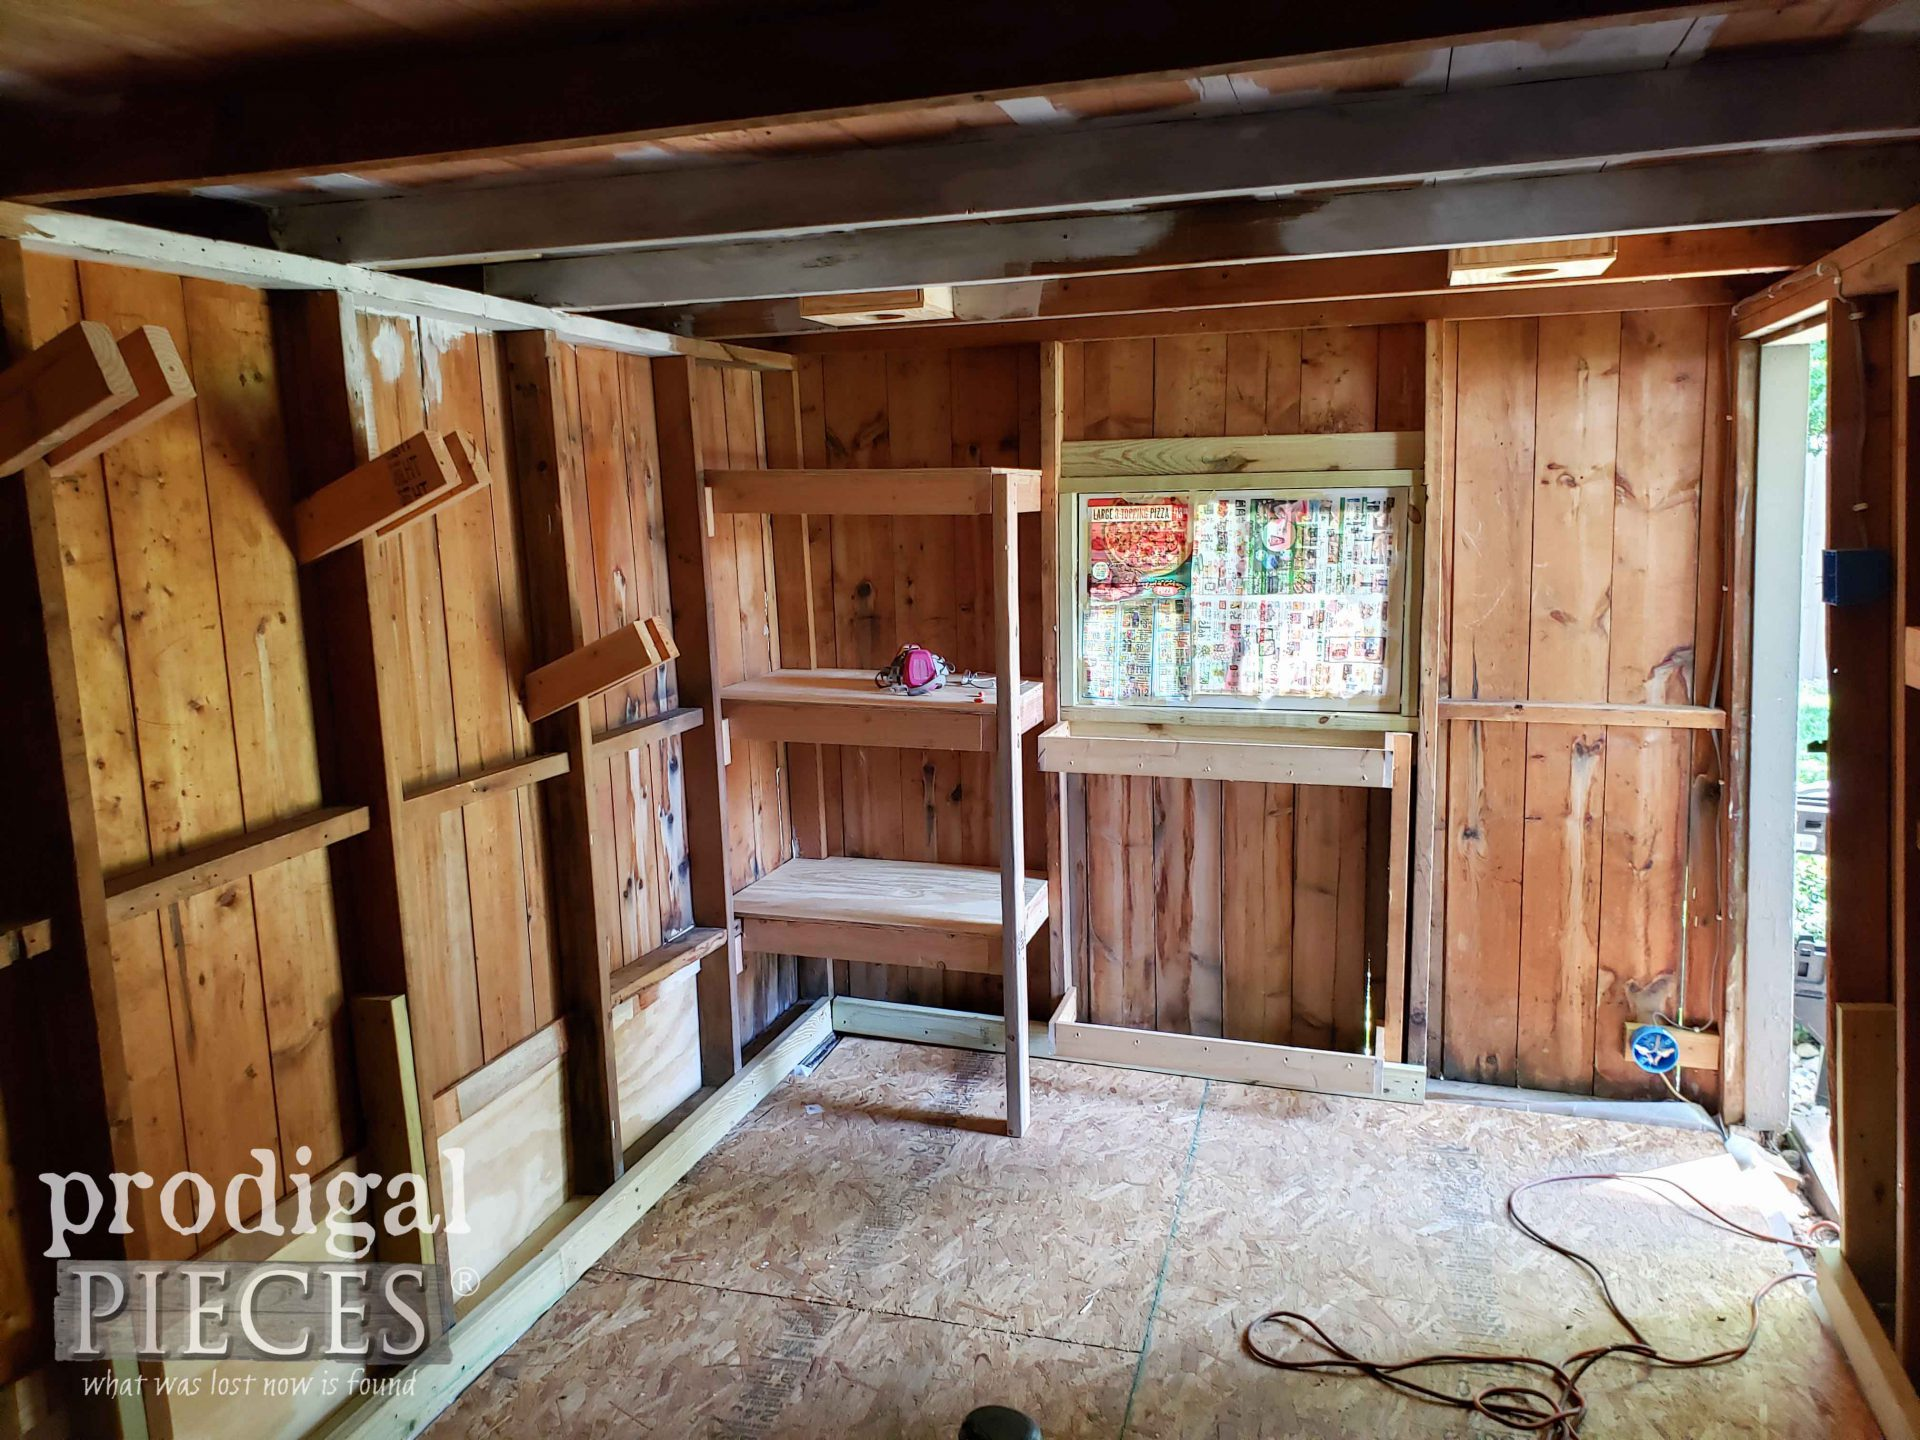 New Shelves in Garden Shed Remodel | prodigalpieces.com